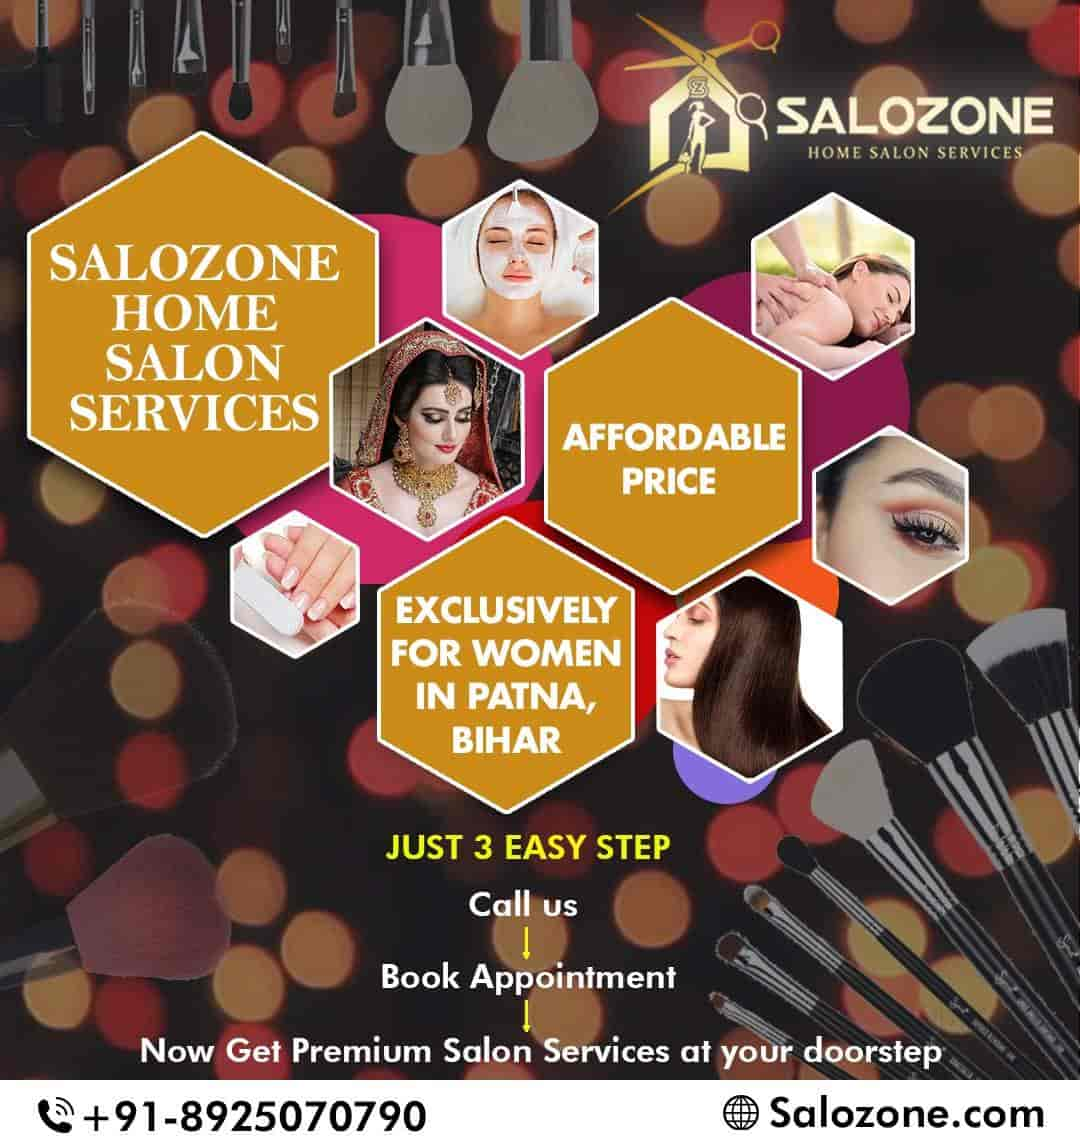 Salozone Home Salon Services, Patna Gpo - Beauty Parlours At